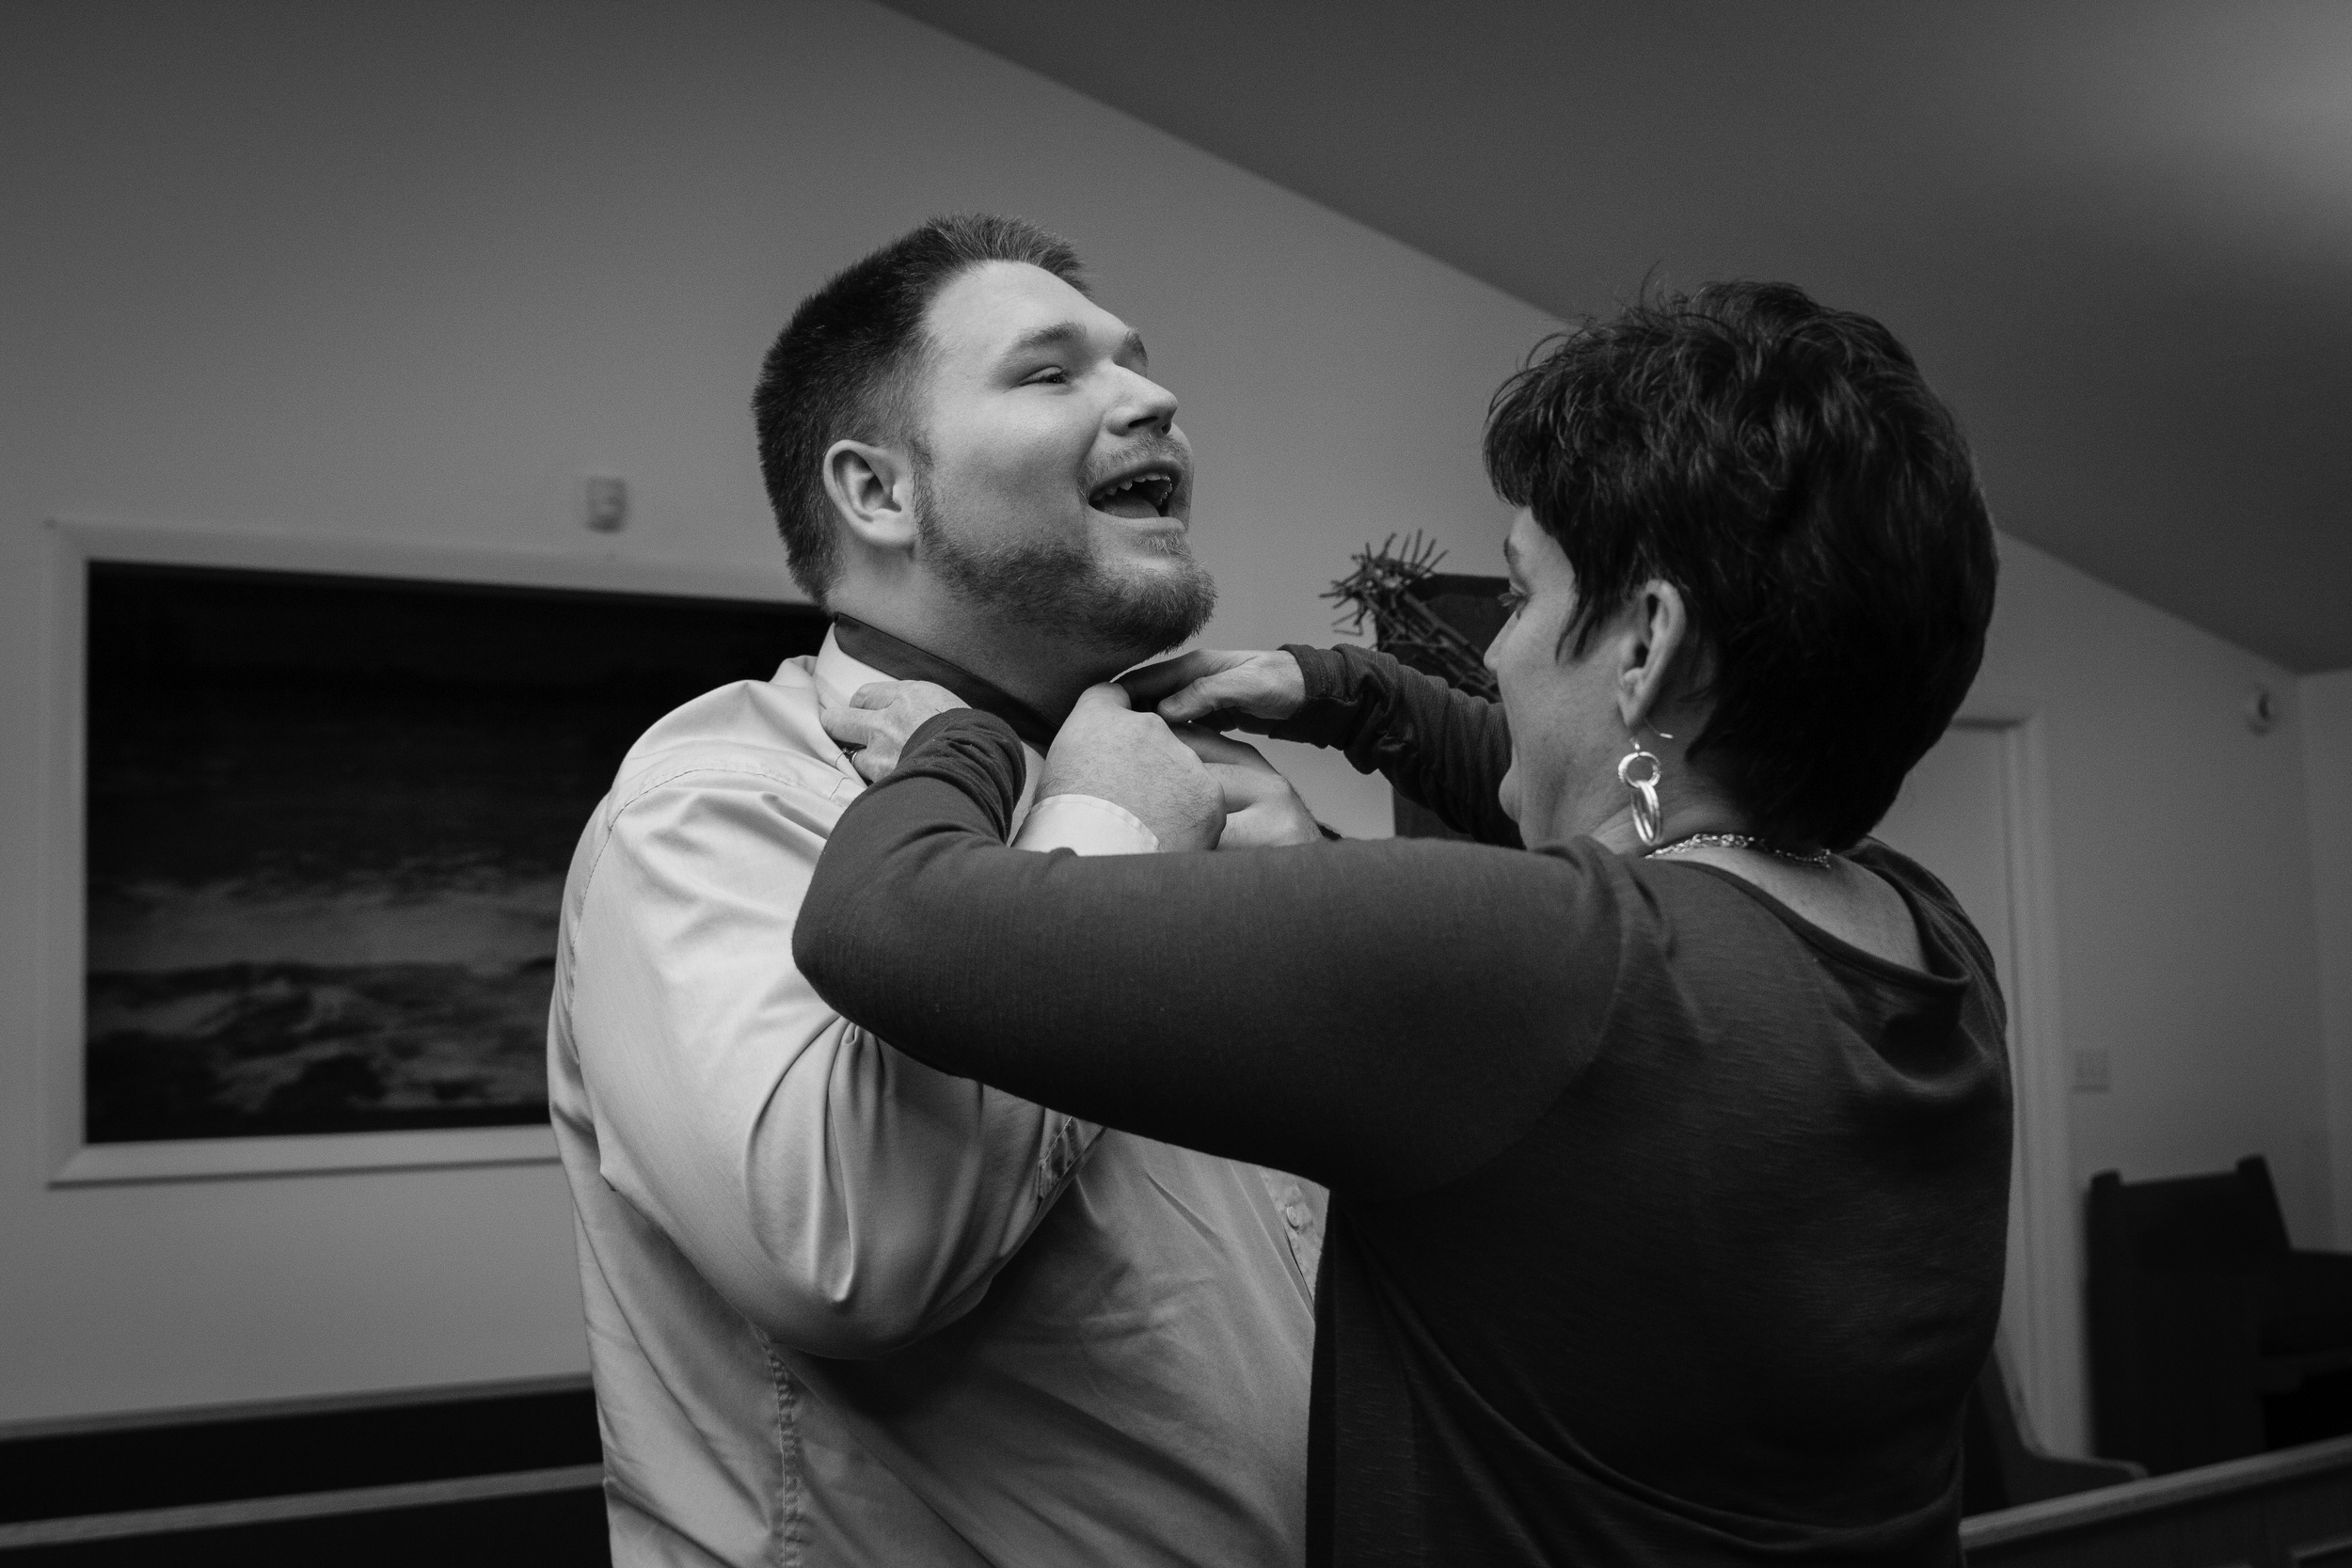 Poor Billy was so nervous he had to have Emilea's mom help put his bowtie on!!